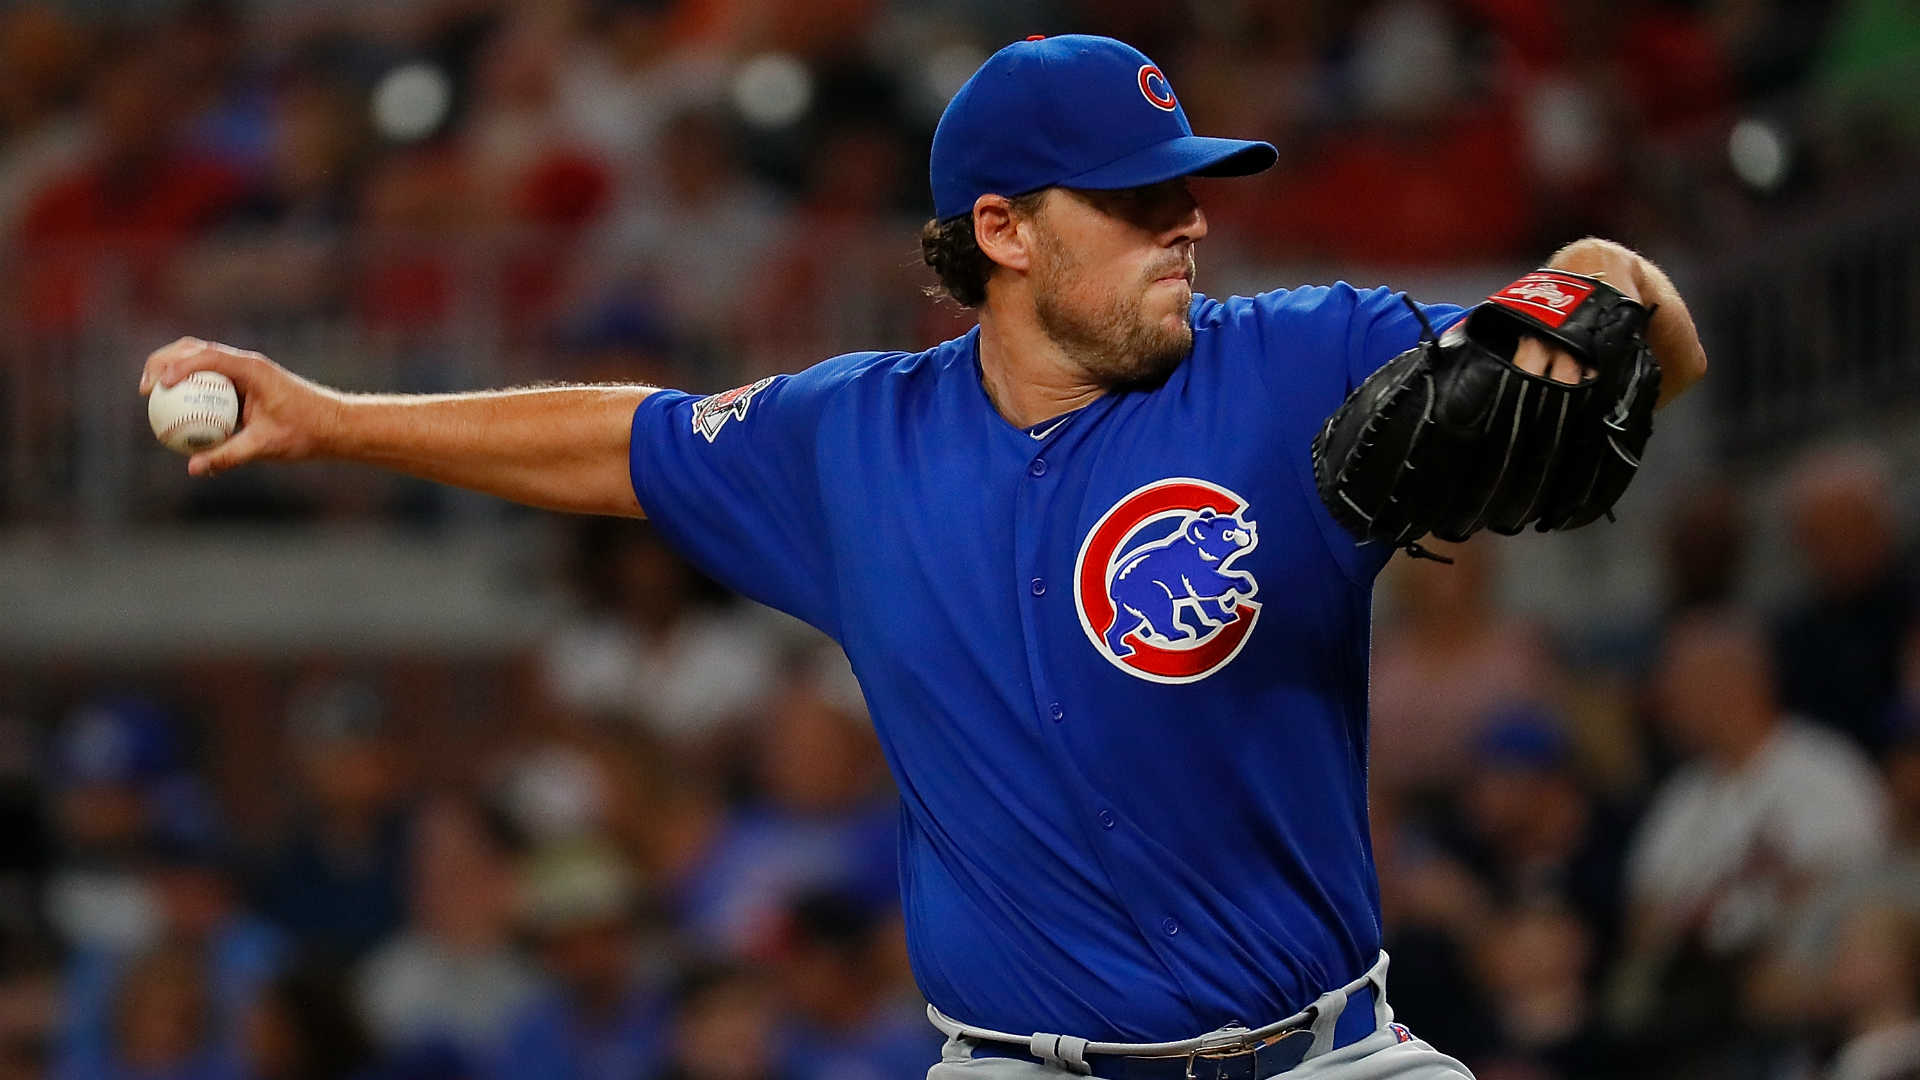 Cubs tap into 2016 staples to extend post-break streak